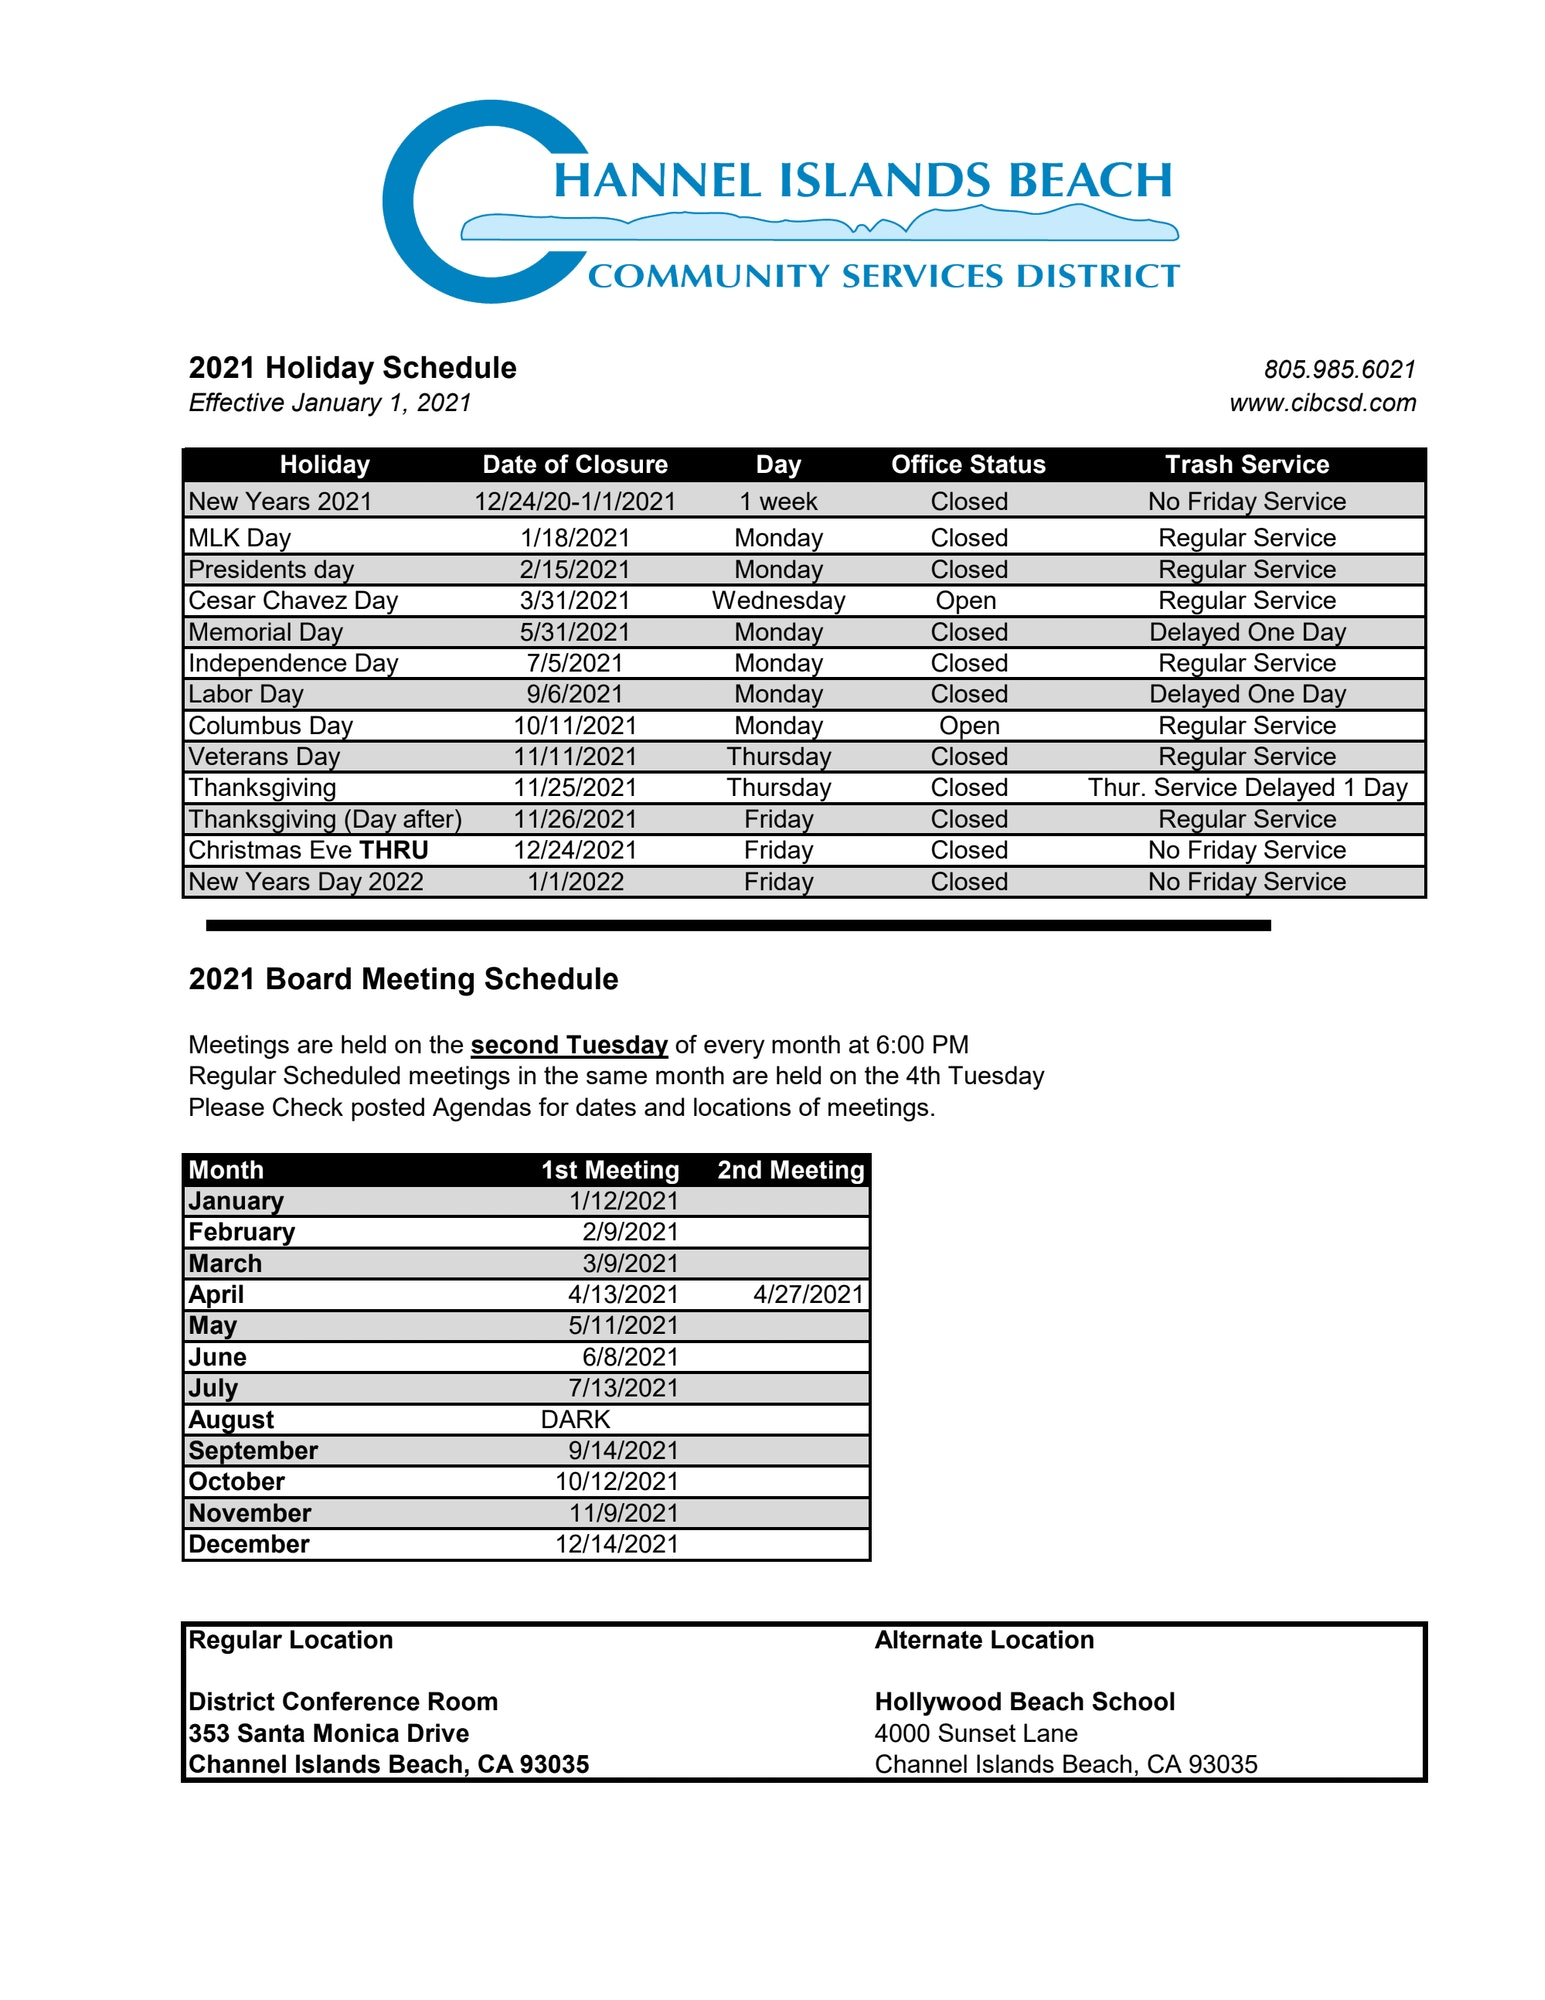 2021 Holiday and Board Meeting Schedule